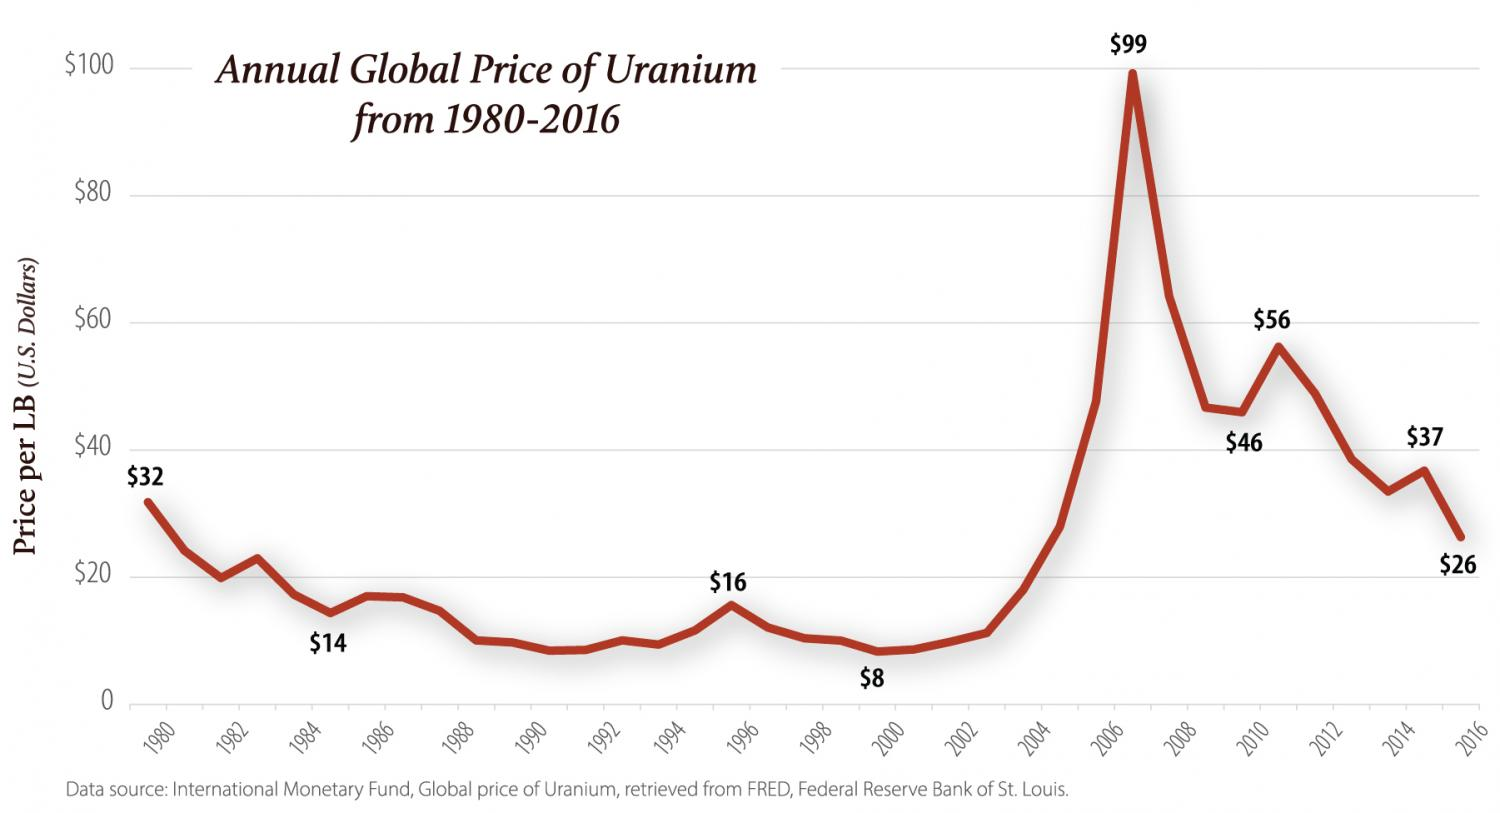 Uranium Boom and Bust timeline